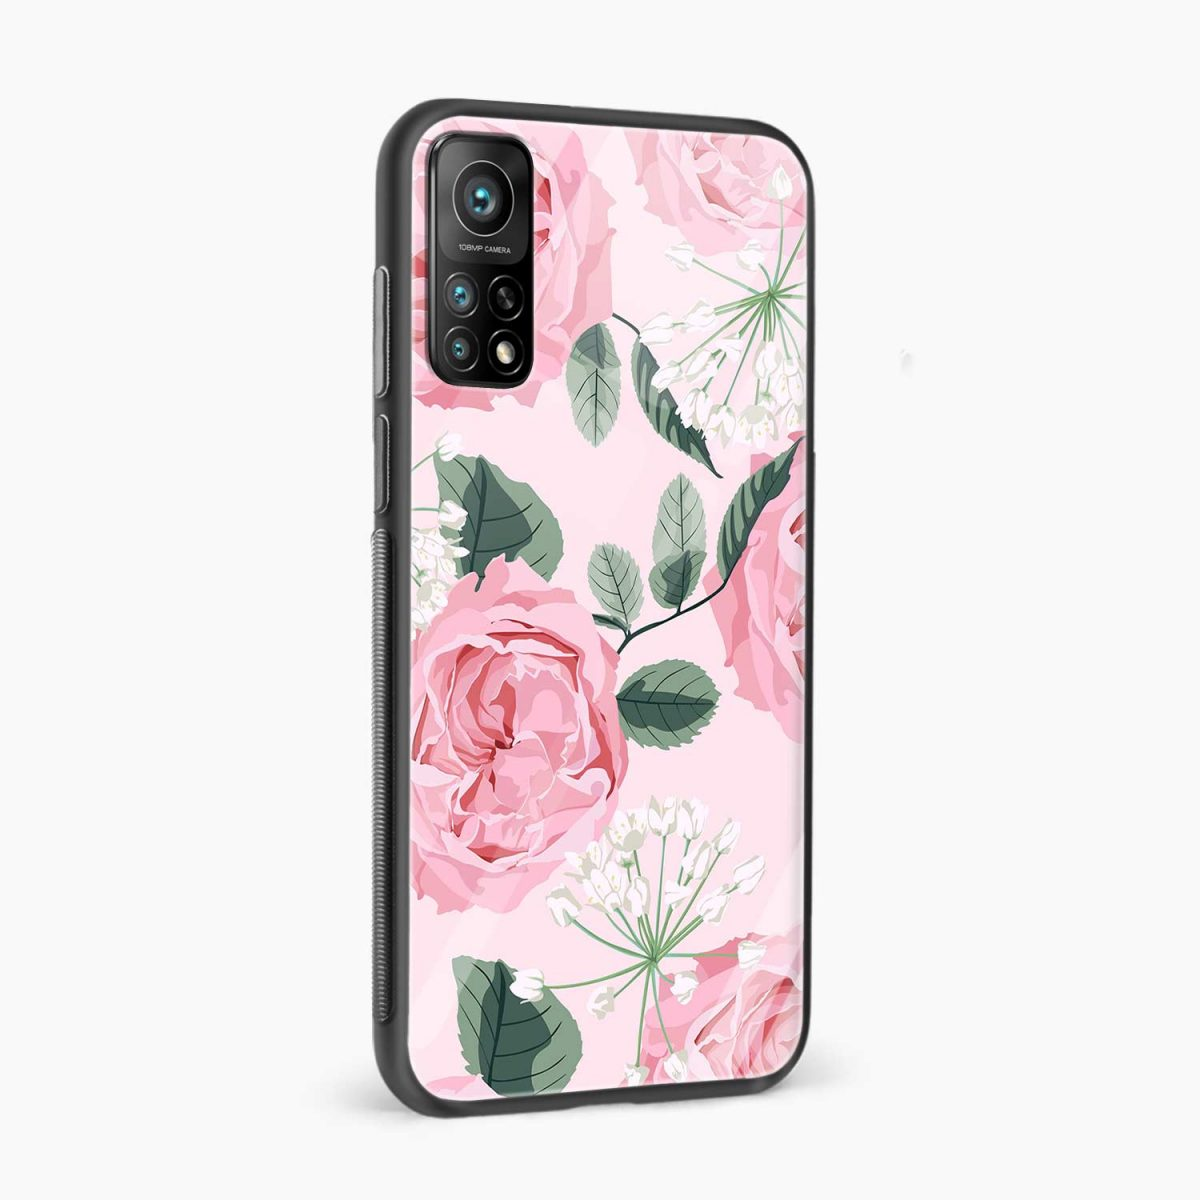 pink floral girlish xiaomi mi 10t pro back cover side view